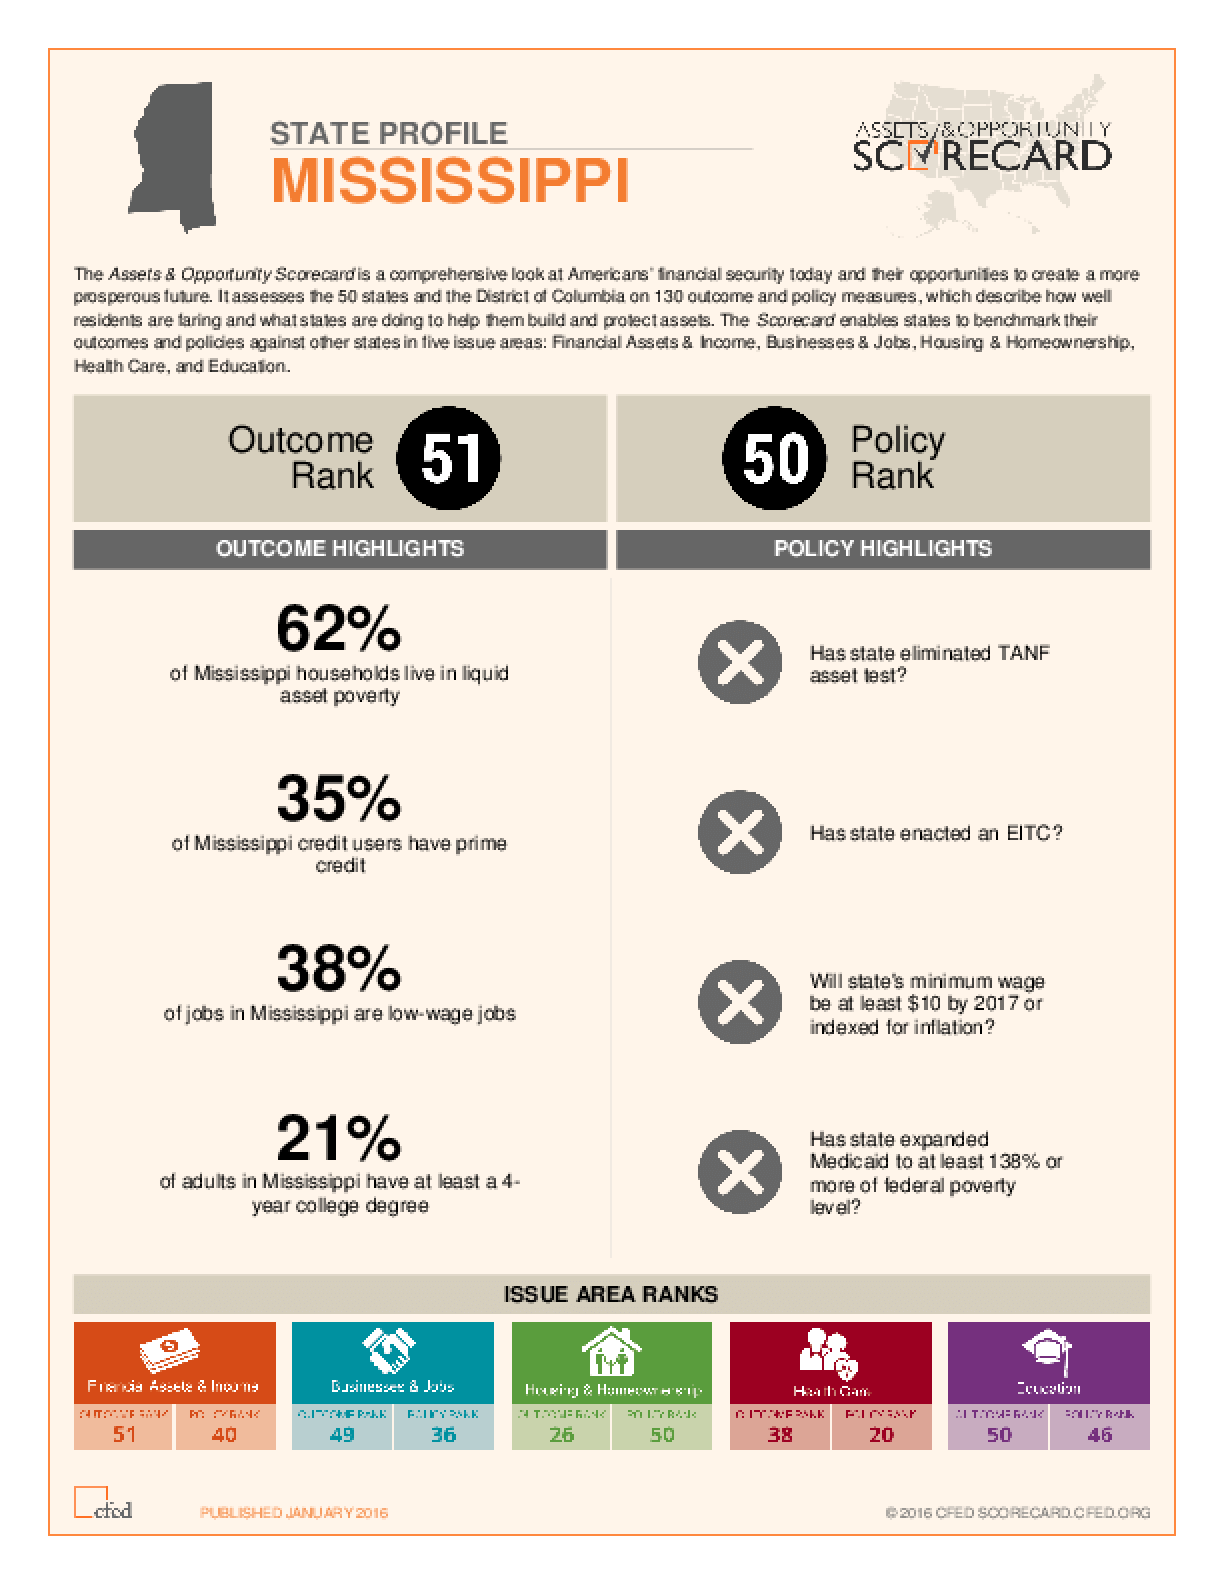 State Profile Mississippi: Assets and Opportunity Scorecard